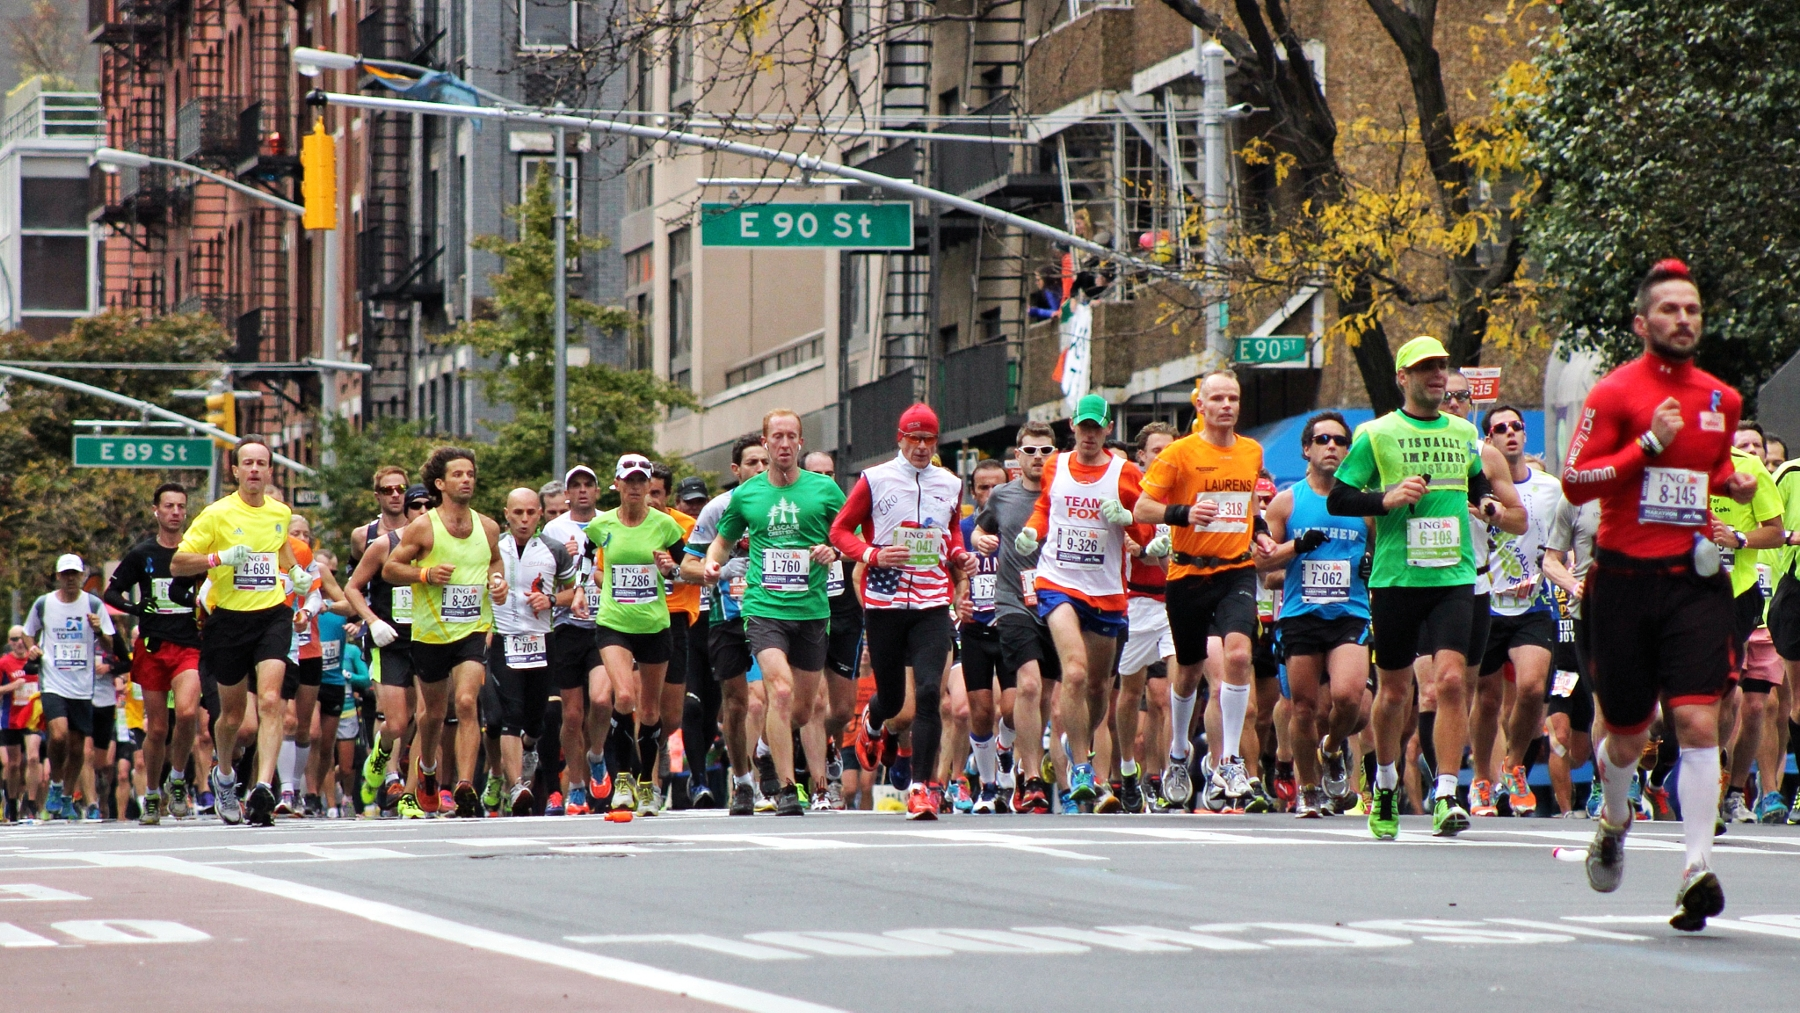 stock-photo-nyc-marathon-2013-51353182.jpg